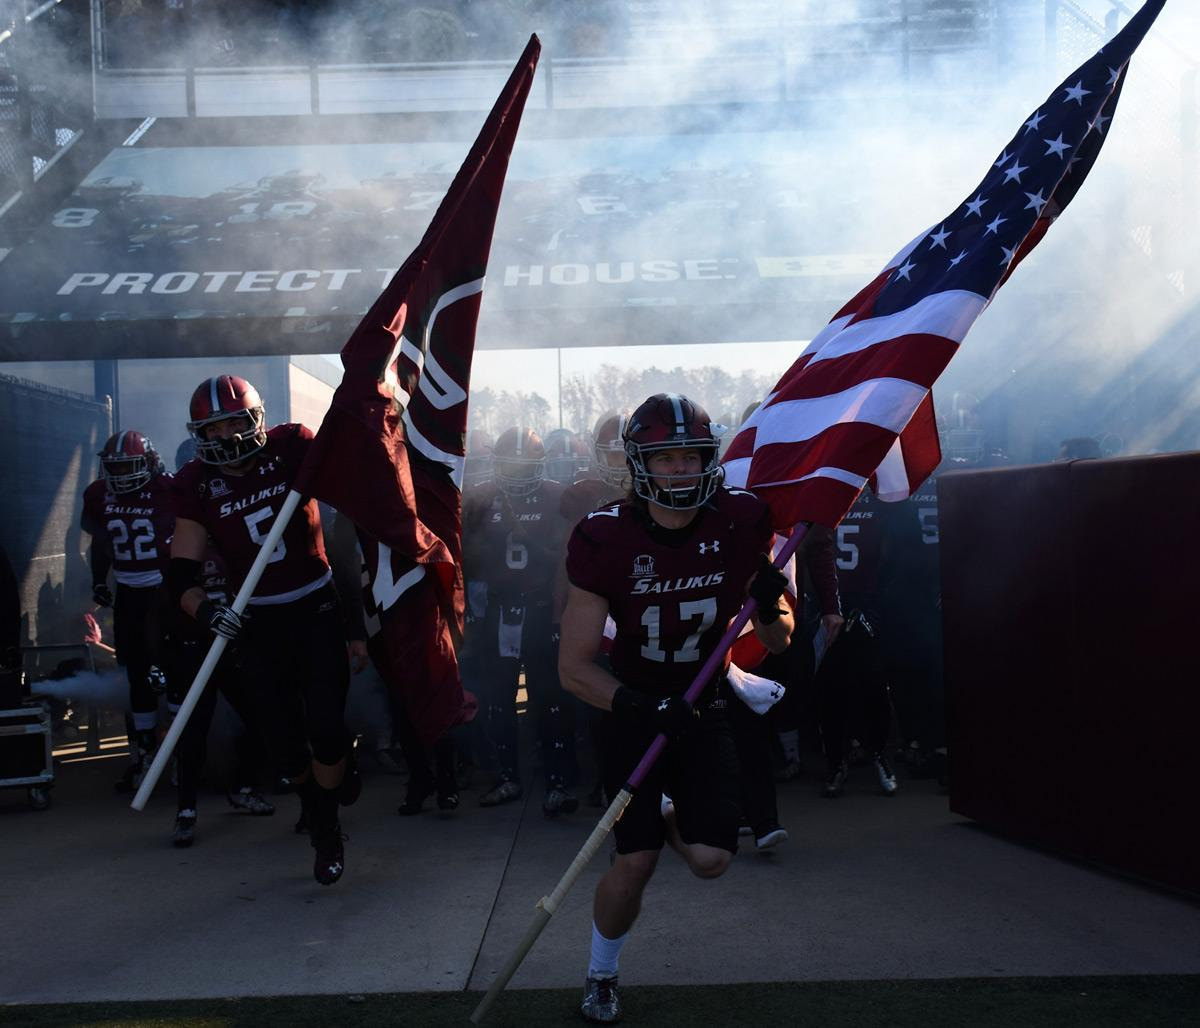 Senior wide receiver Billy Reed (17) and senior linebacker Chase Allen (5) run onto the field with flags before the Salukis' 44-34 win against Western Illinois on Saturday, Nov. 19, 2016, at Saluki Stadium. (Athena Chrysanthou | @Chrysant1Athena)